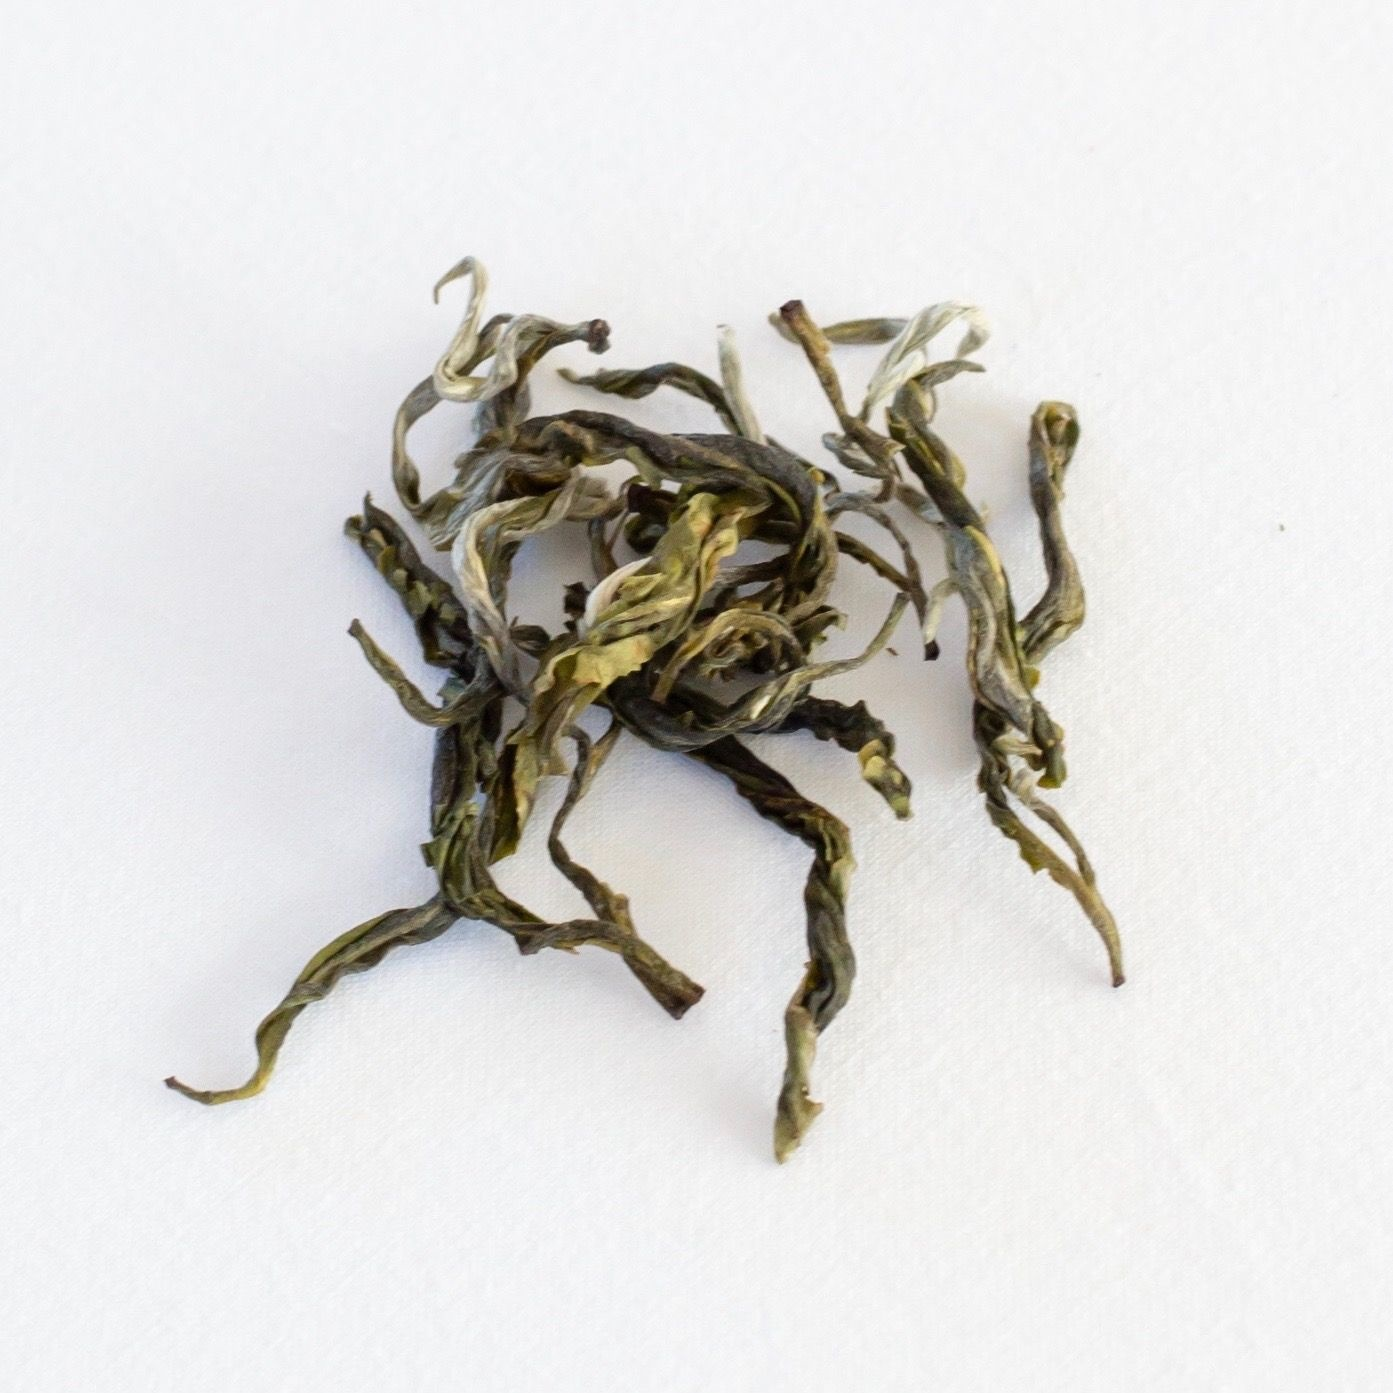 Yunnan White Dragon - Witte thee-2